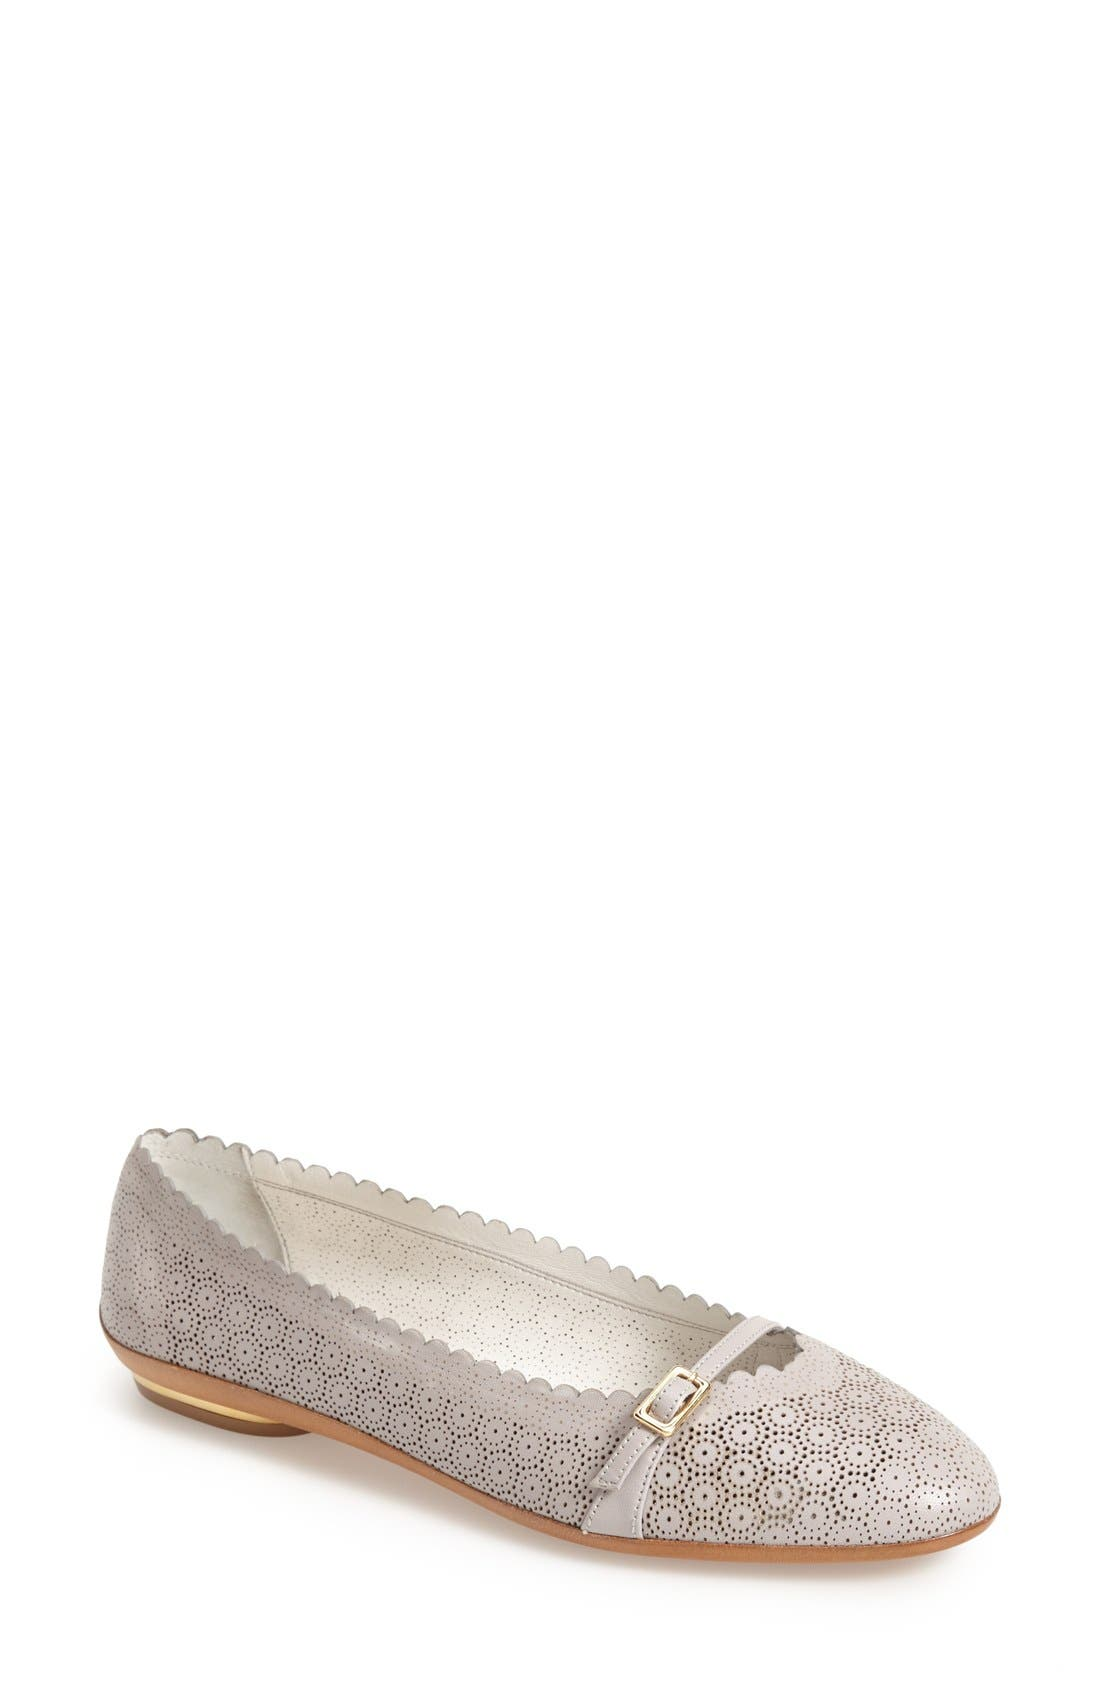 'Audrey' Mary Jane Flat, Main, color, 028